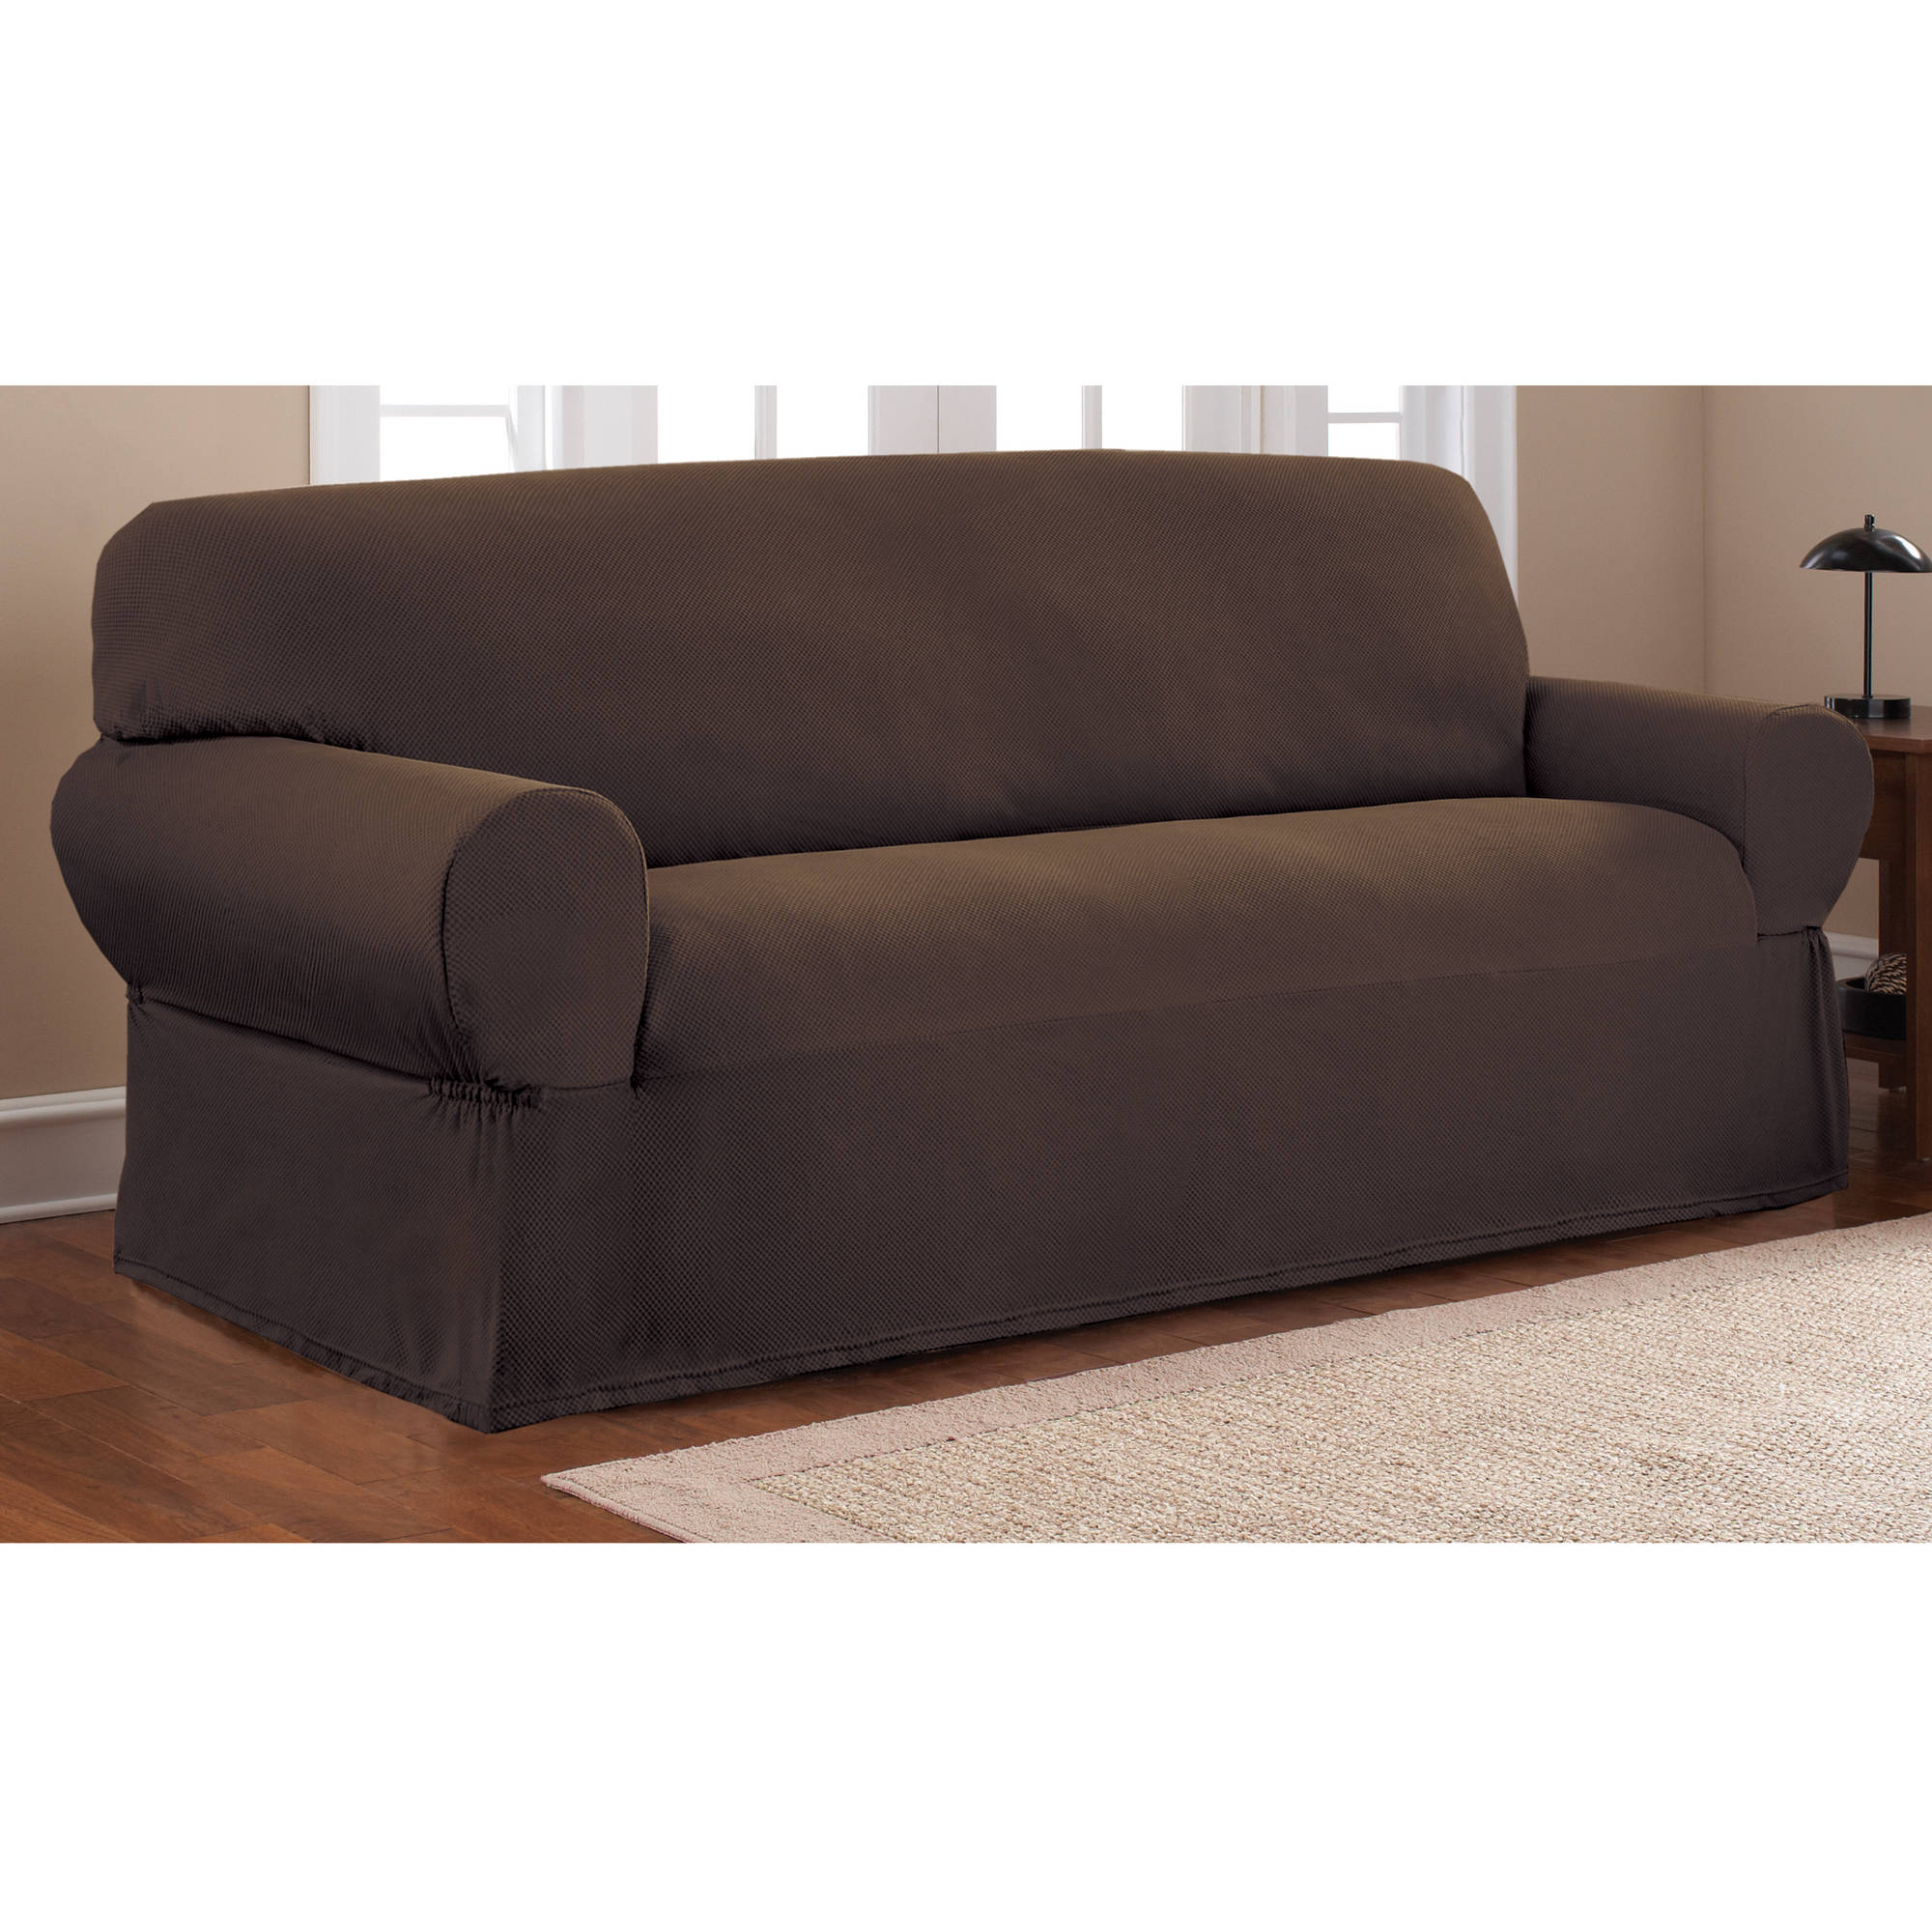 7 piece sofa covers dual recliner product features